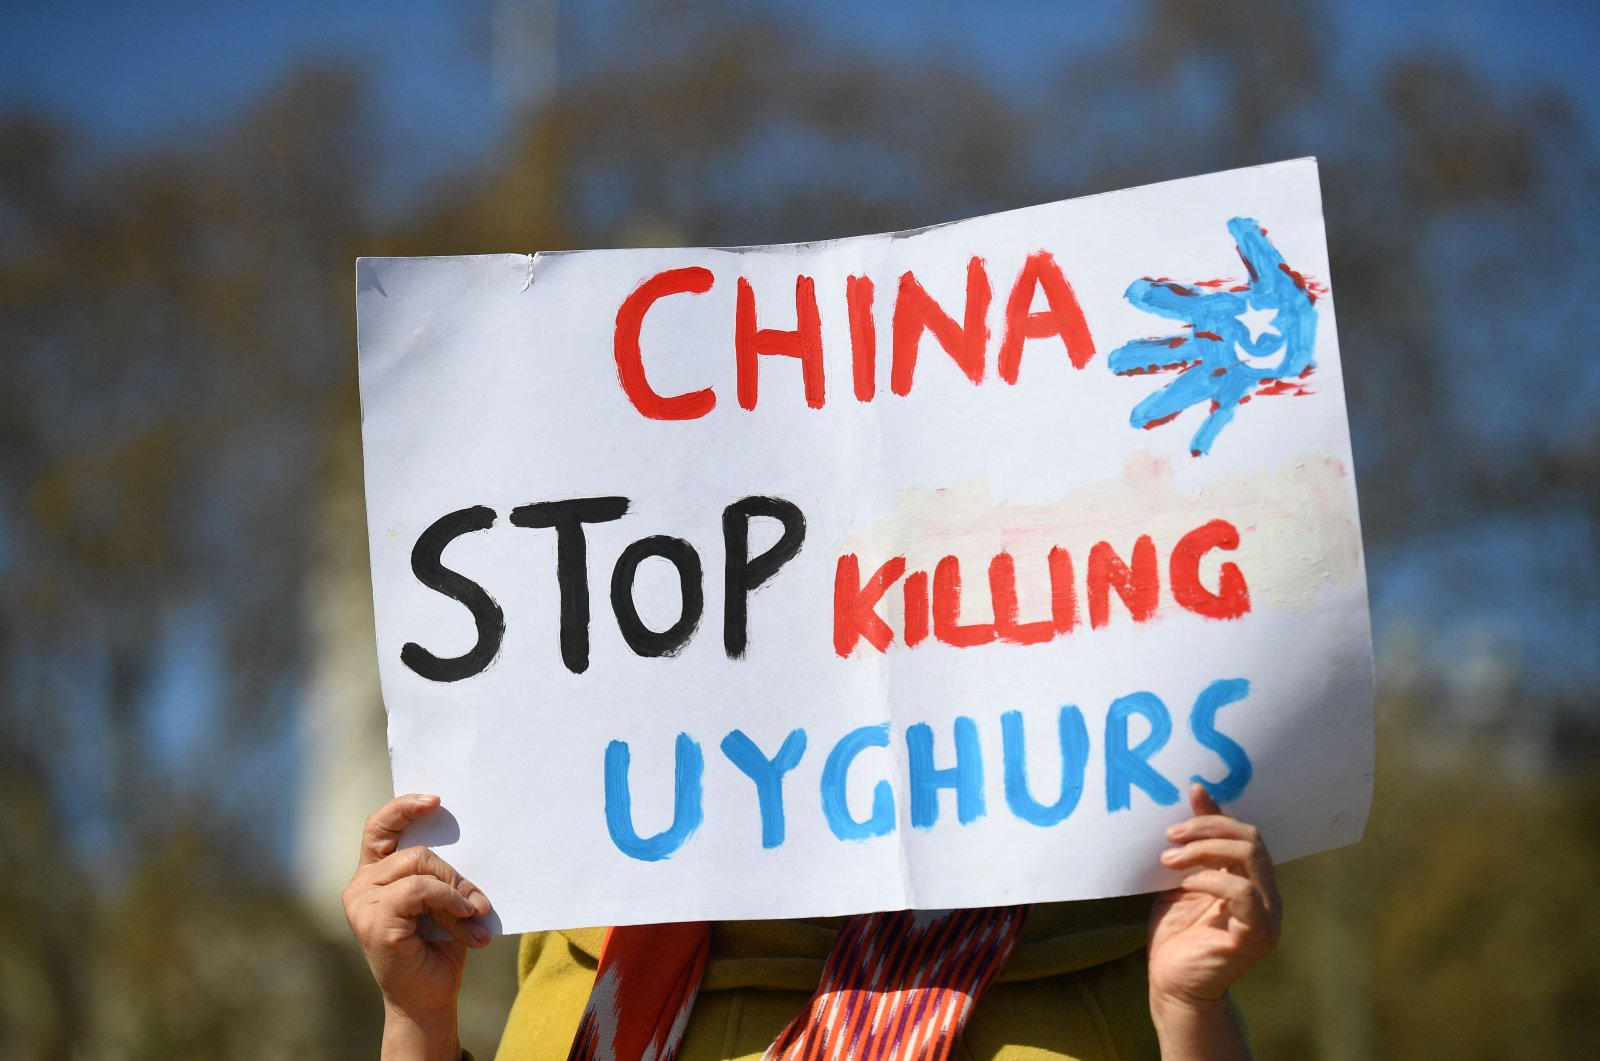 A member of the Uyghur community holds a placard as she joins a demonstration to call on the British parliament to vote to recognize persecution of China's Muslim minority Uyghur people as genocide and crimes against humanity in London, U.K., April 22, 2021. (AFP Photo)